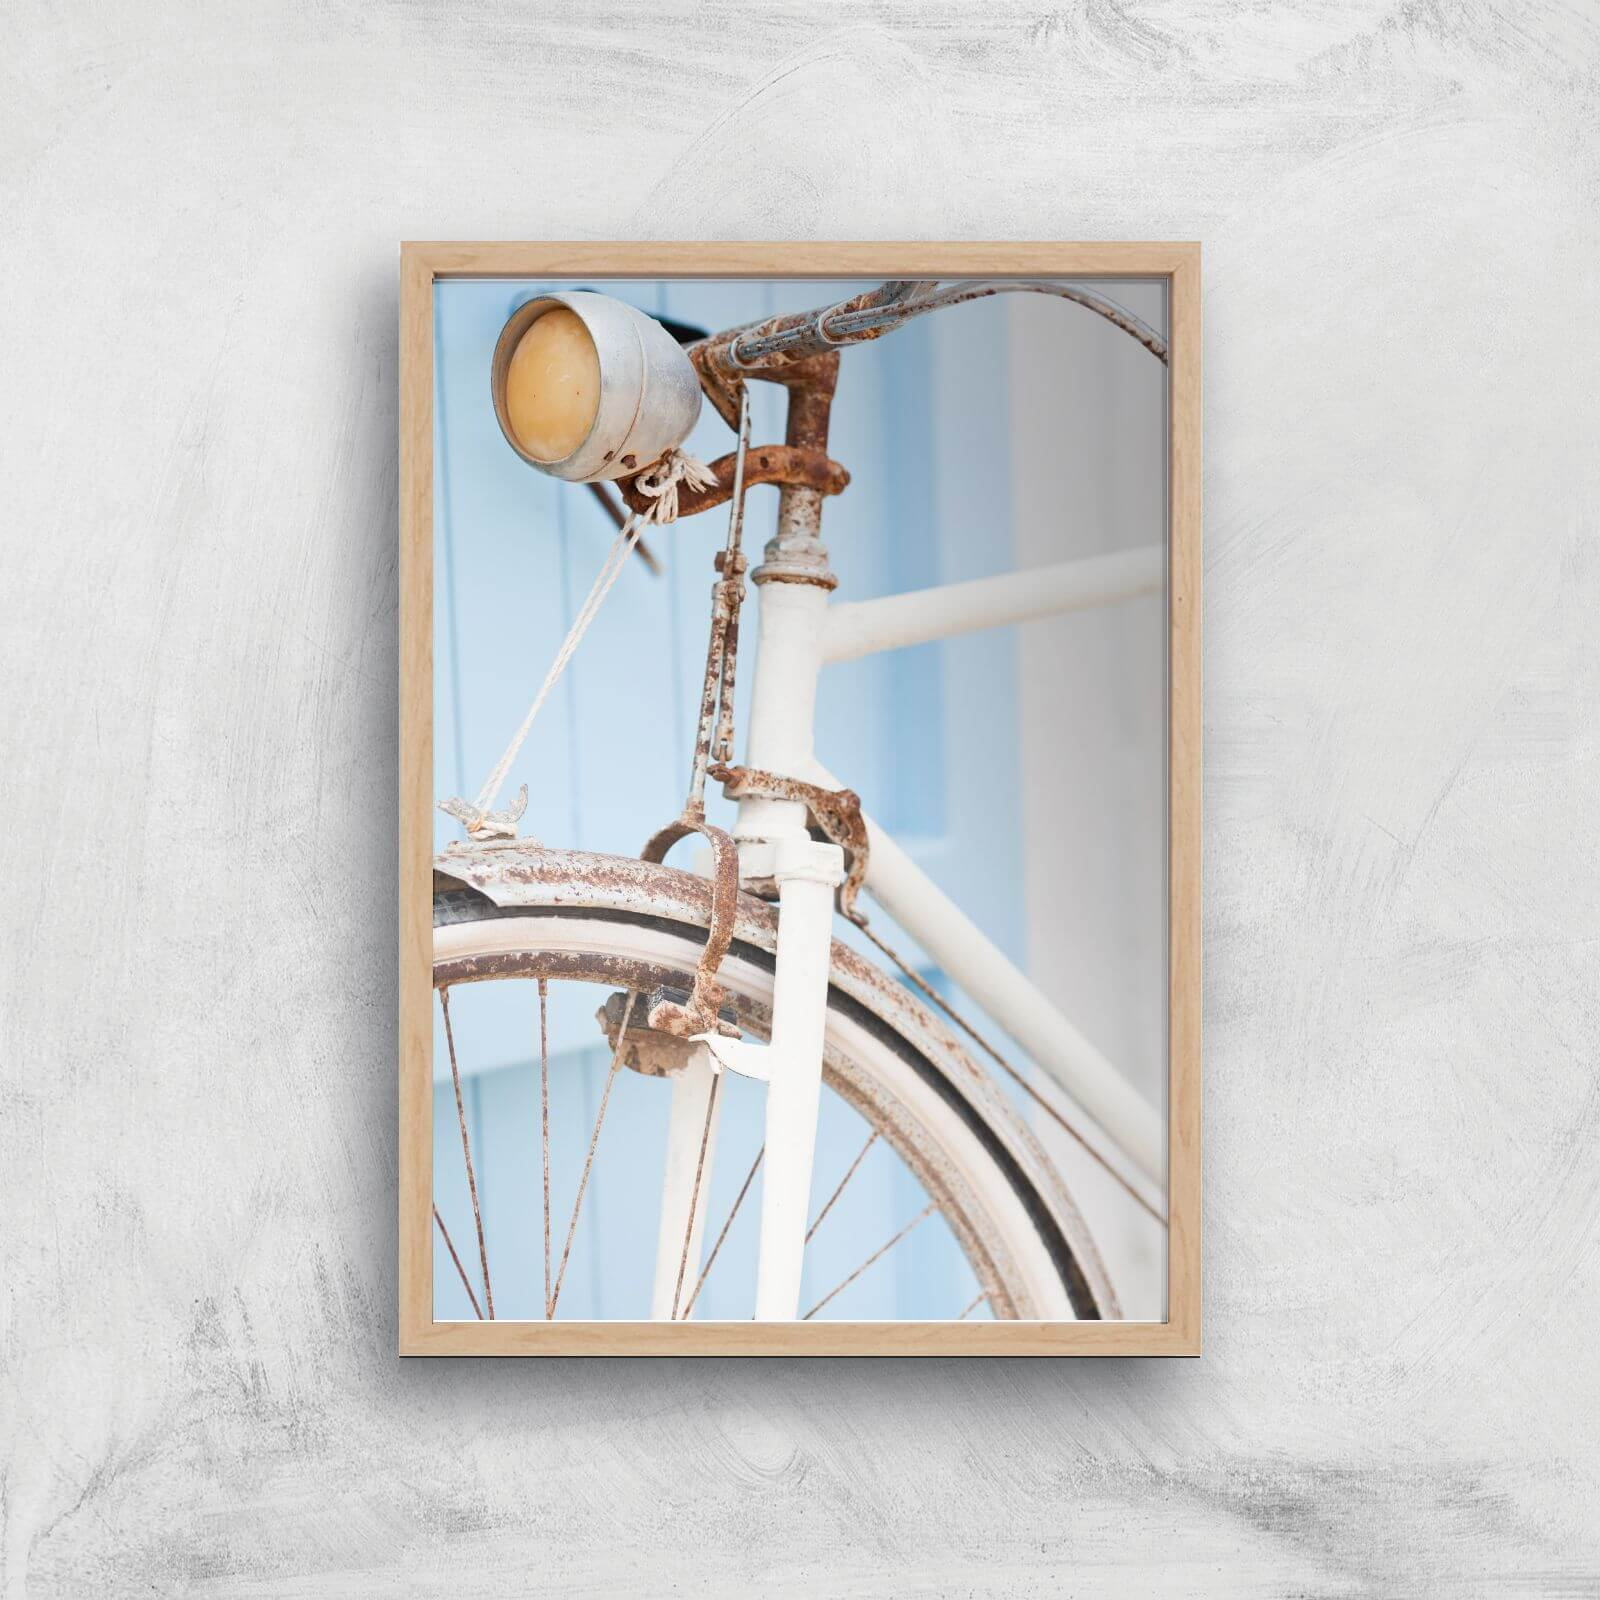 Rusty Bicycle Giclee Art Print   A3   Wooden Frame